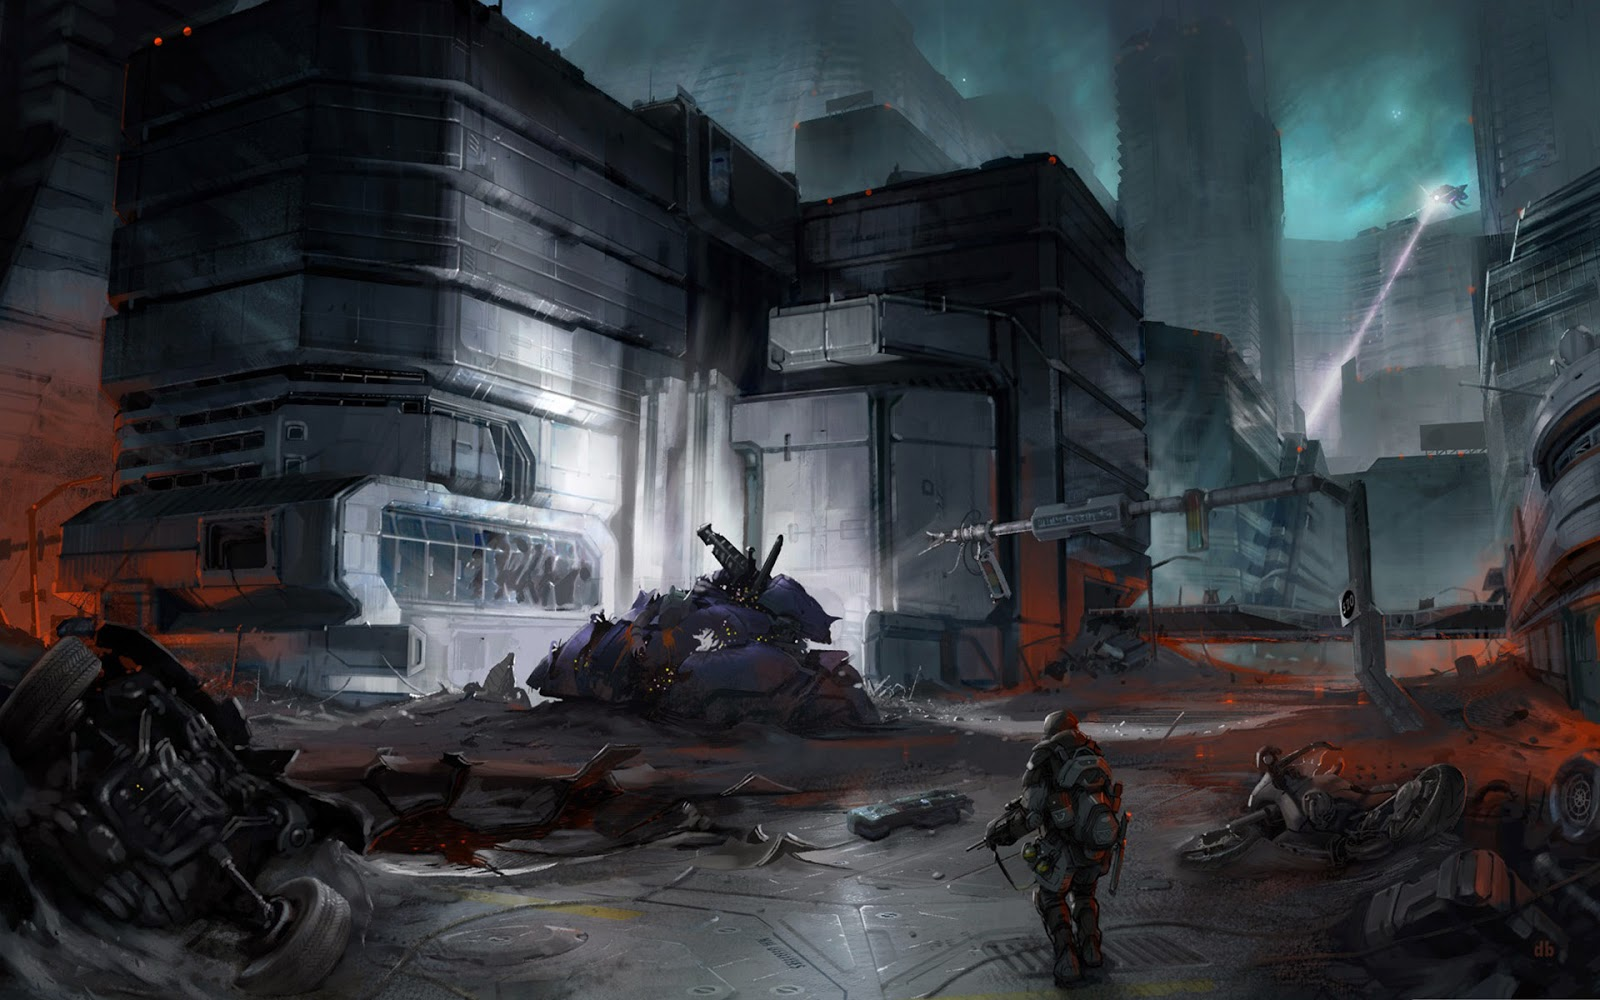 Halo Video Games Concept Art Buildings City Soldier HD Wallpaper x02 1600x1000